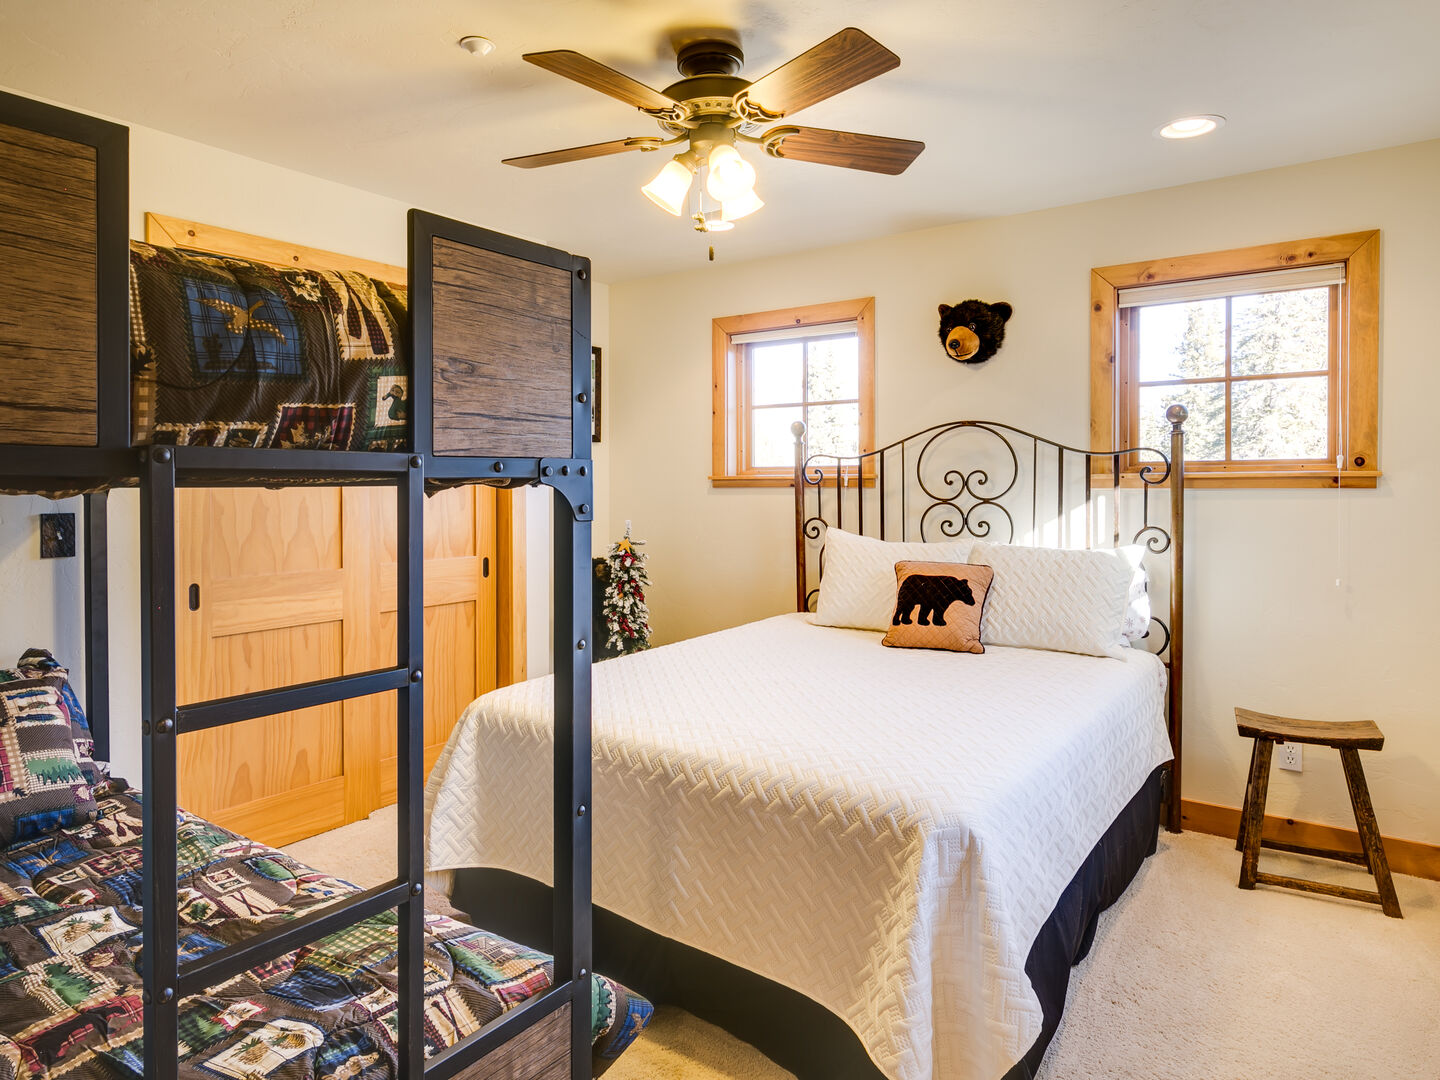 2nd bedroom with bunkbeds